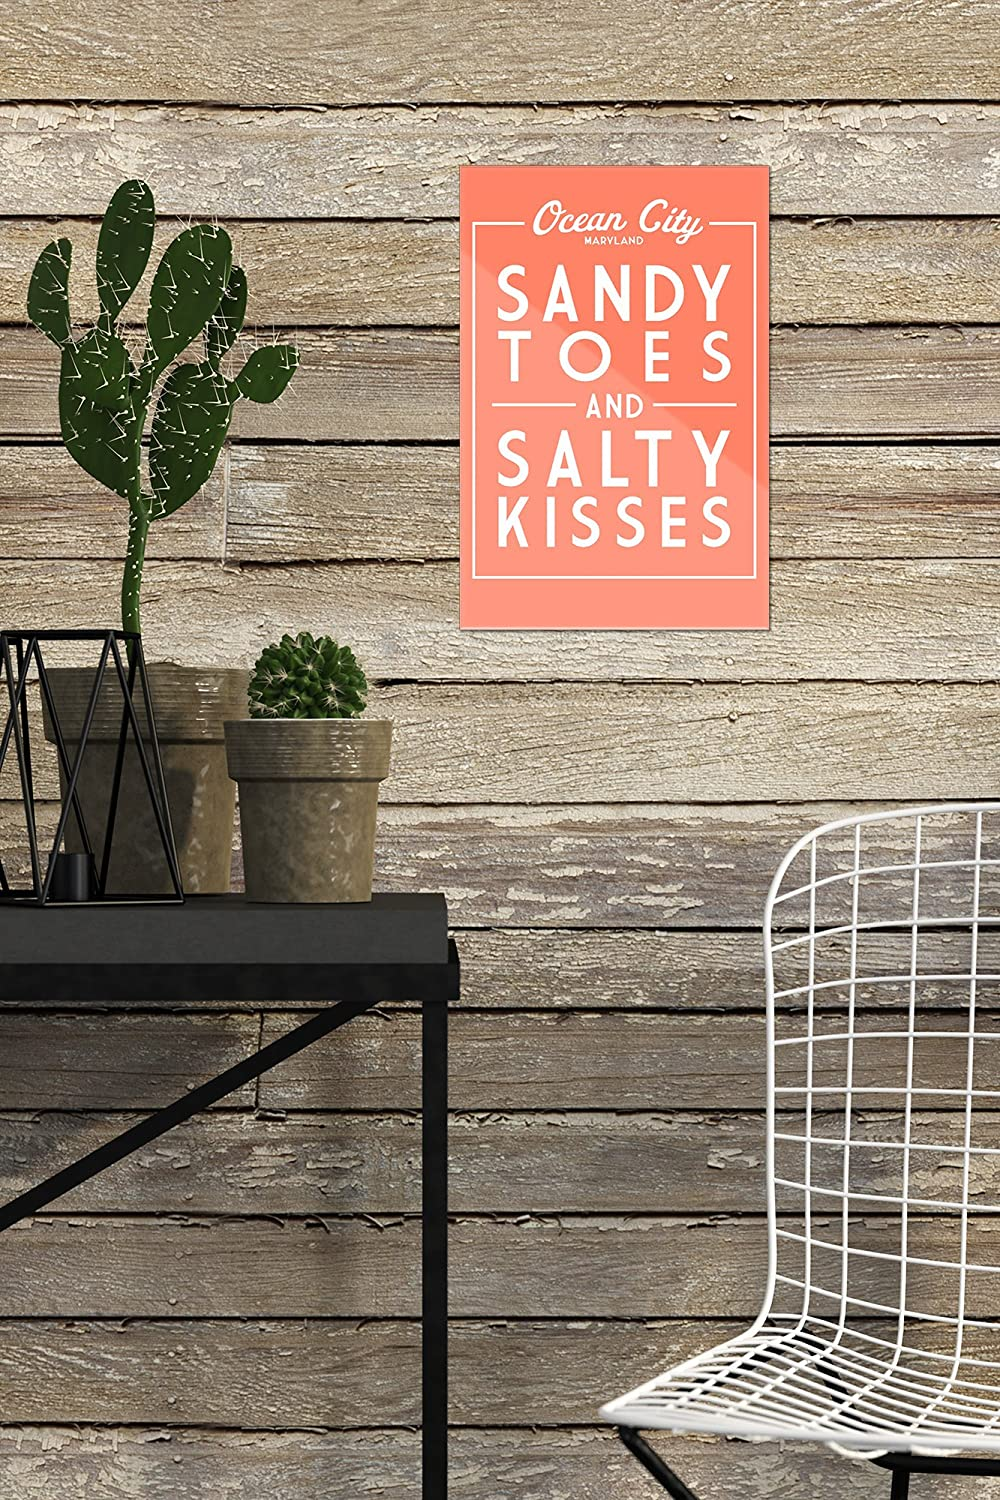 16x24 SIGNED Print Master Art Print - Wall Decor Poster Sandy Toes and Salty Kisses Simply Said 78867 Ocean City Maryland